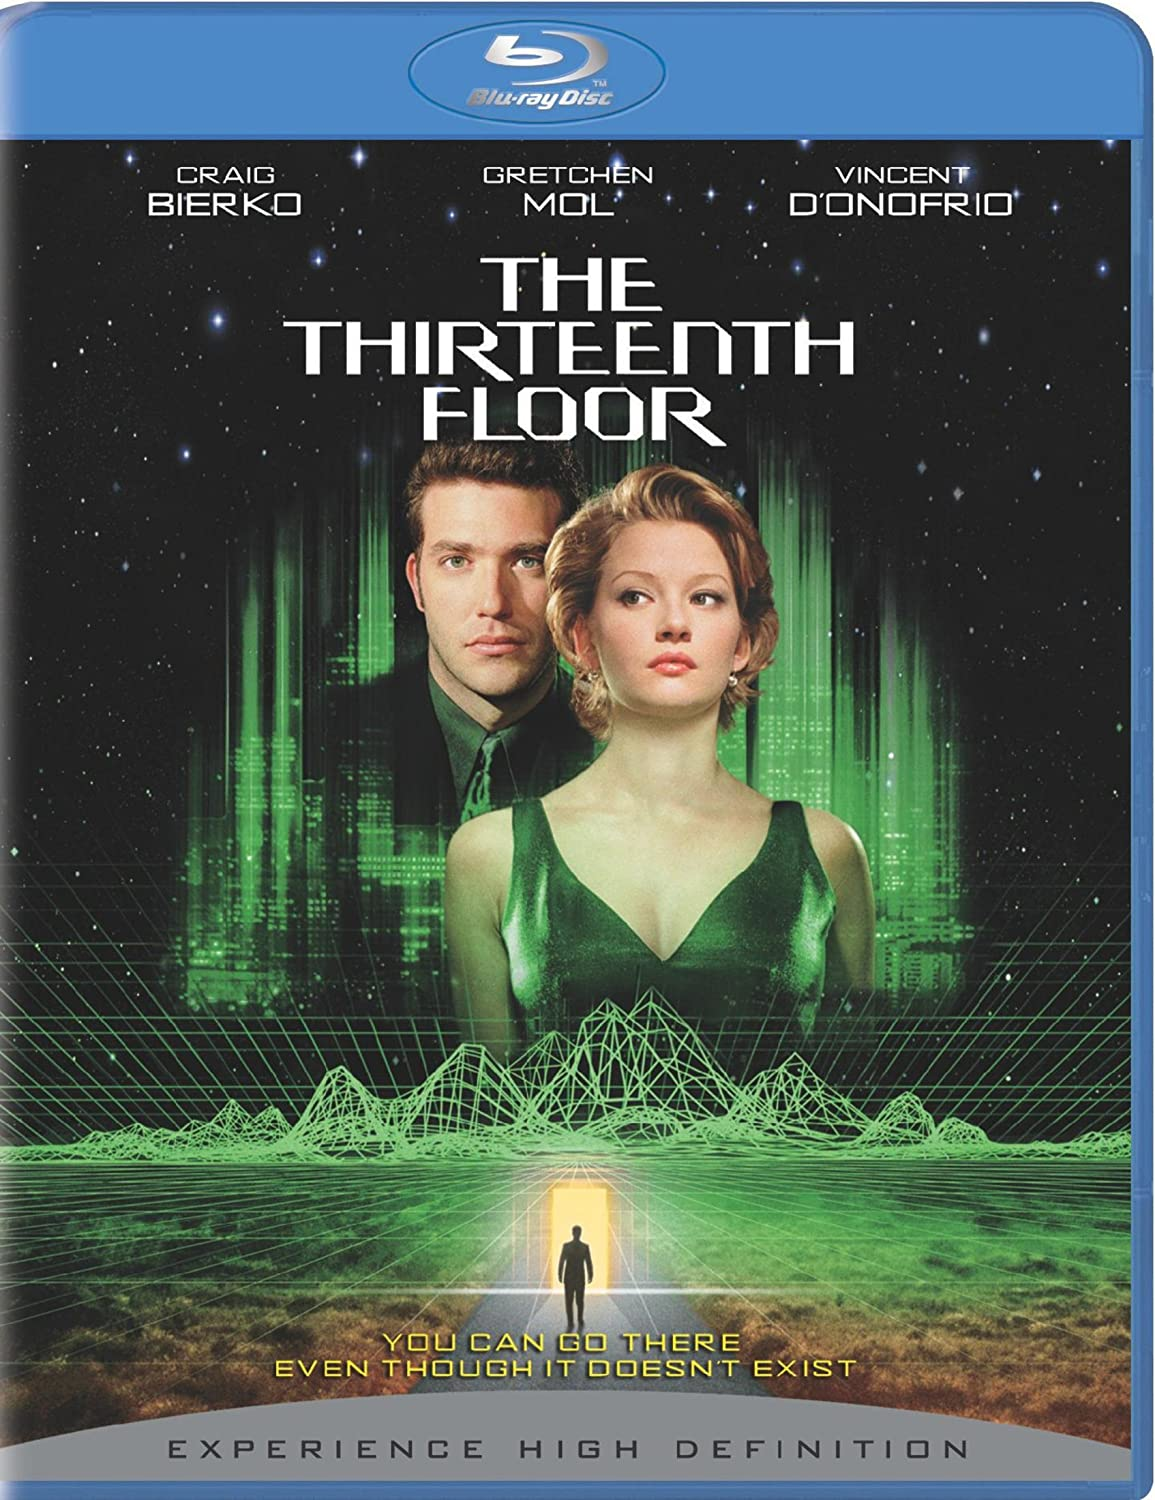 High Quality Amazon.com: The Thirteenth Floor [Blu Ray]: Venessia Valentino, Rachel  Winfree, Darryl Henriques, Toni Sawyer, Jeff Blumenkrantz, Craig Bierko, ...